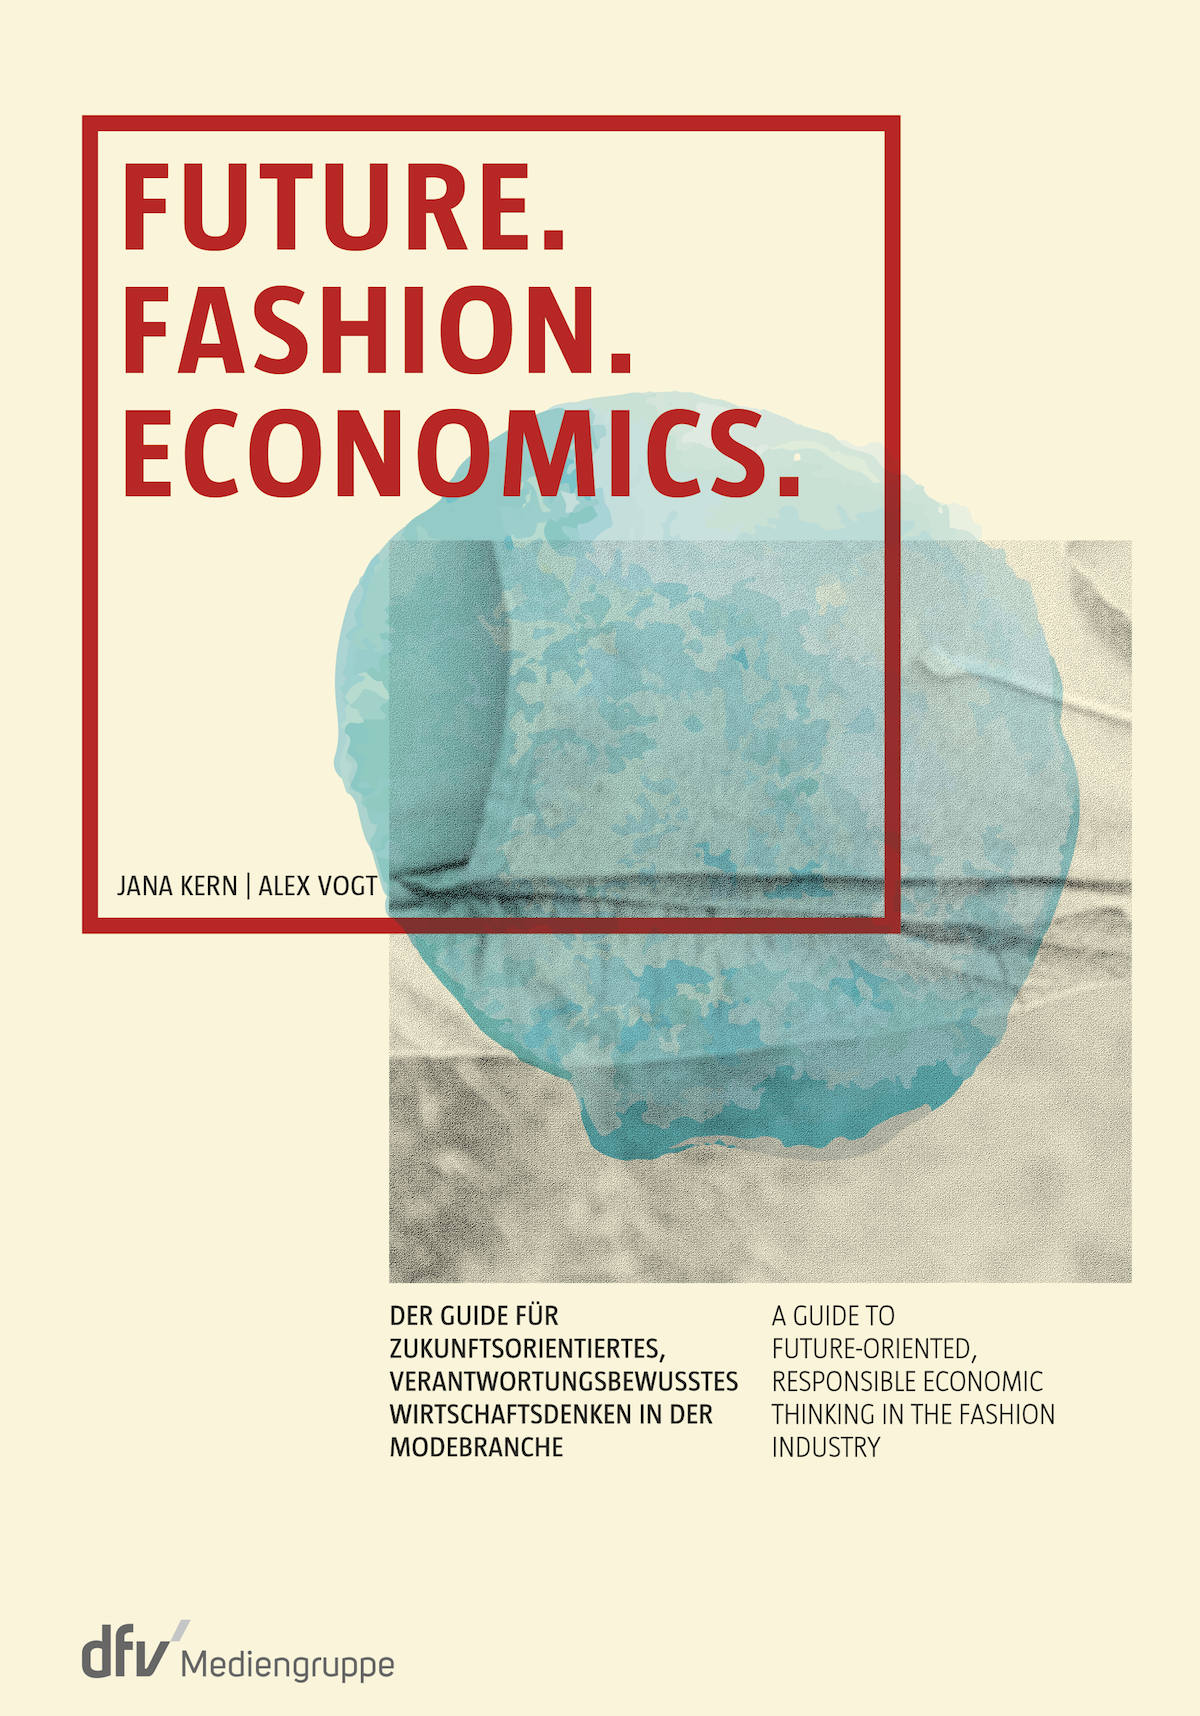 Future. Fashion. Economics